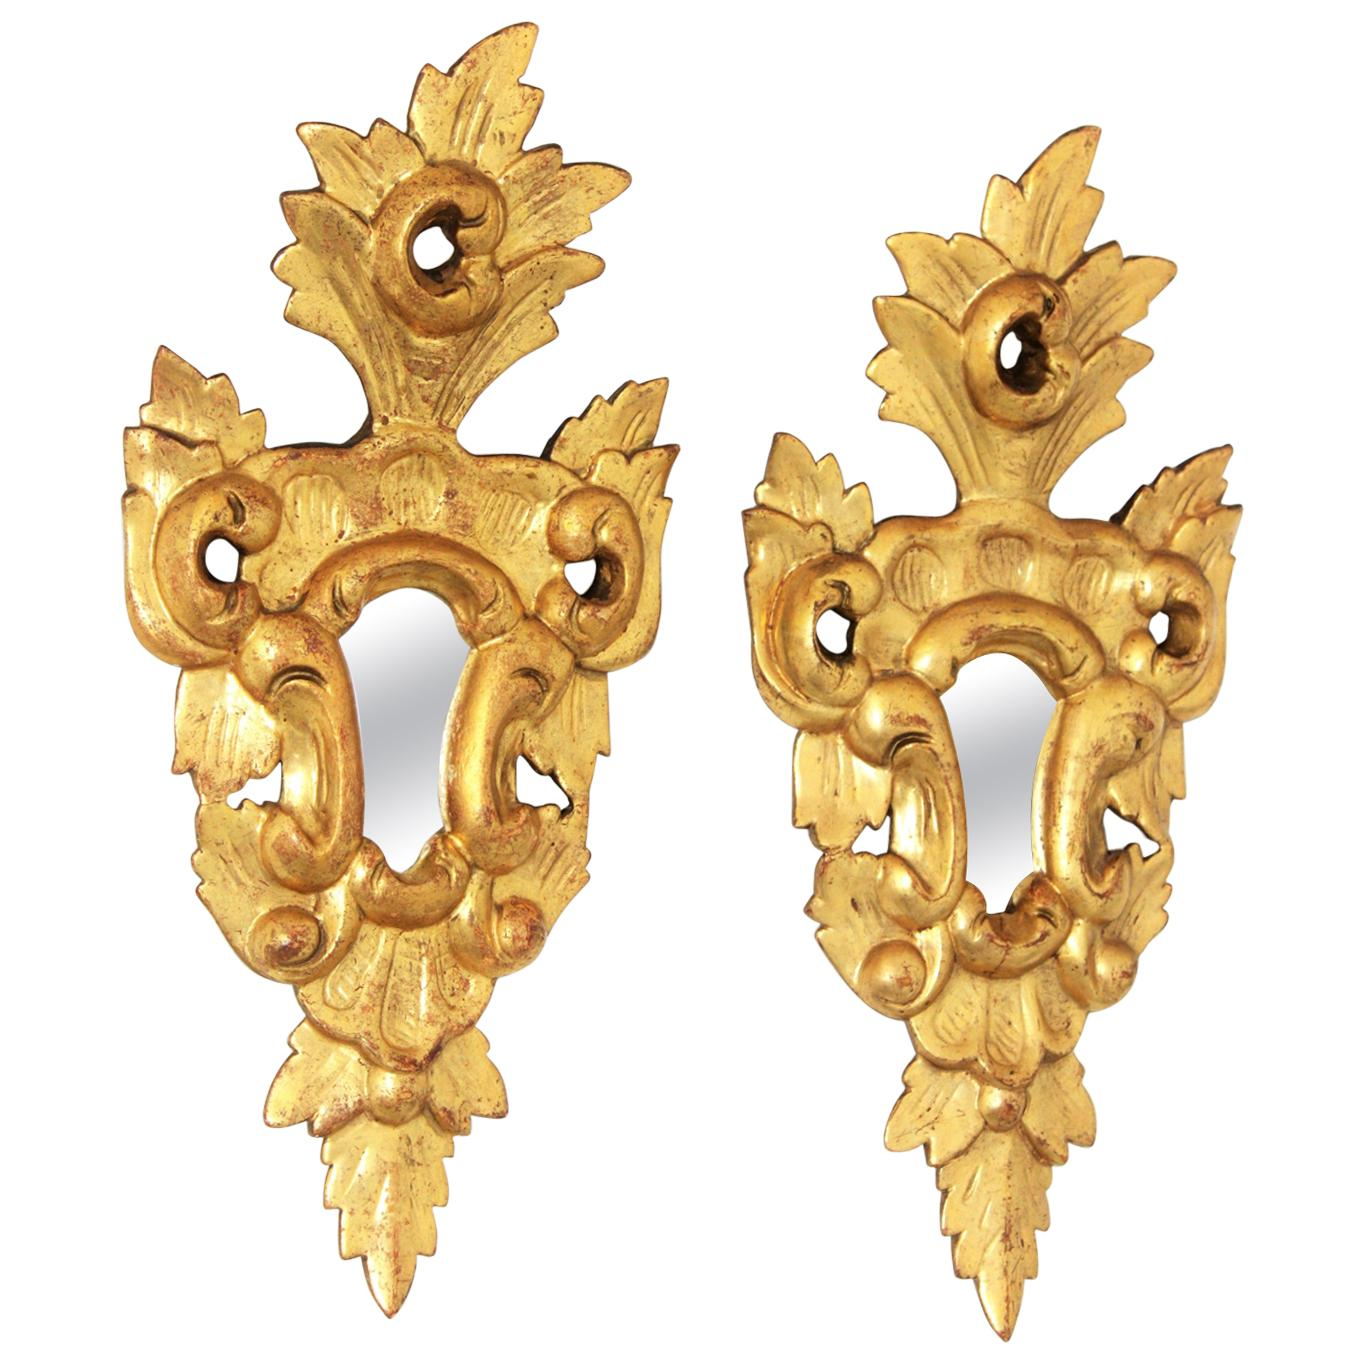 Spanish Rococo Style 24-Karat Gold Leaf Giltwood Miniature Mirrors, Pair